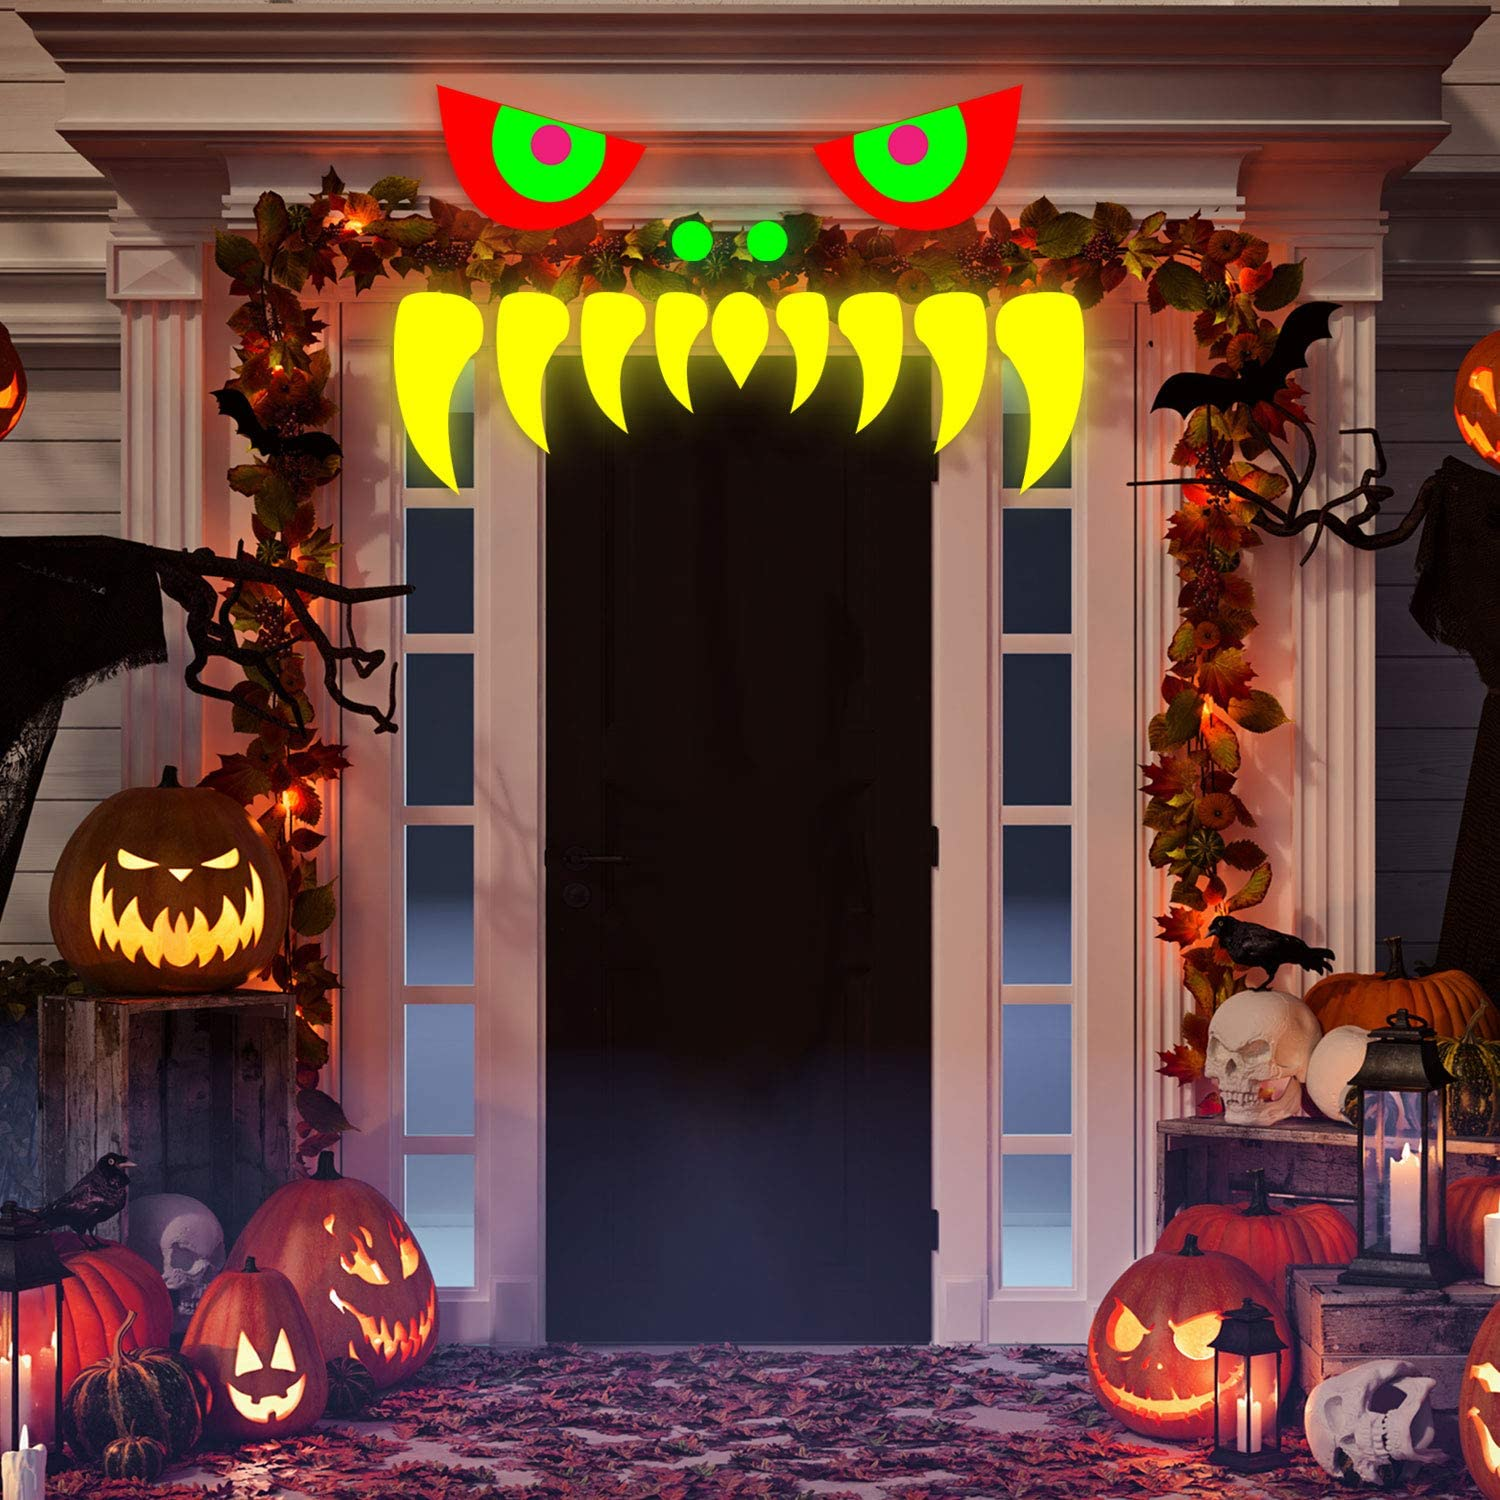 WILLBOND Halloween Monster Face Decorations Outdoor Garage Door Archway Car Party Decor with Eyes Teeth Cutouts for Halloween Party Wedding Decoration Neon Glow Black Light Reactive Party